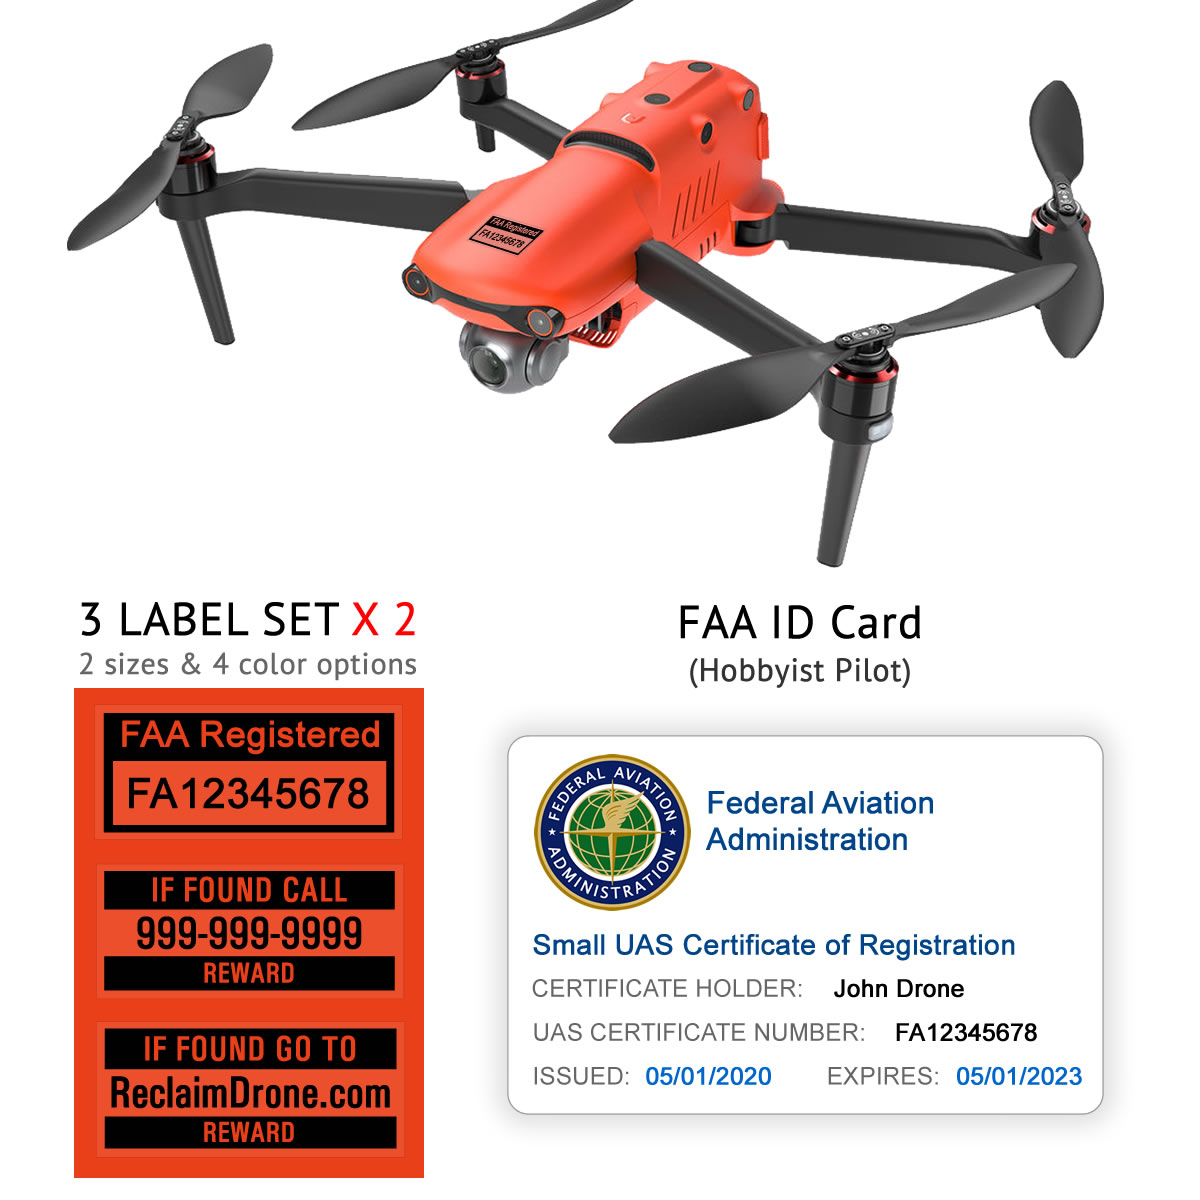 Autel Evo 2 – Bundle – FAA Registration Labels and Hobbyist FAA ID Card